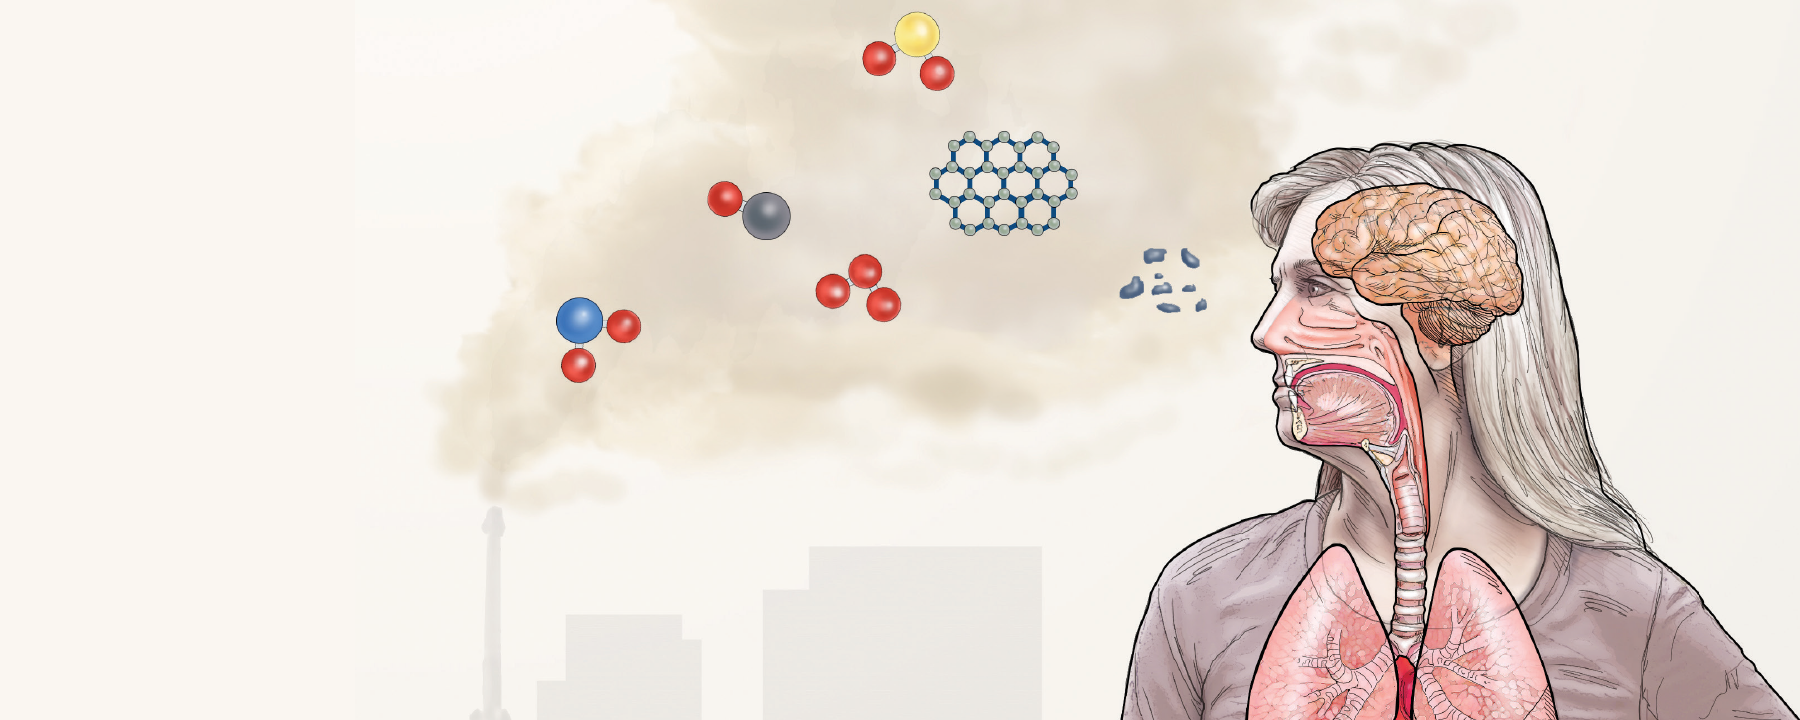 Infographic: How Air Pollution Could Affect the Brain